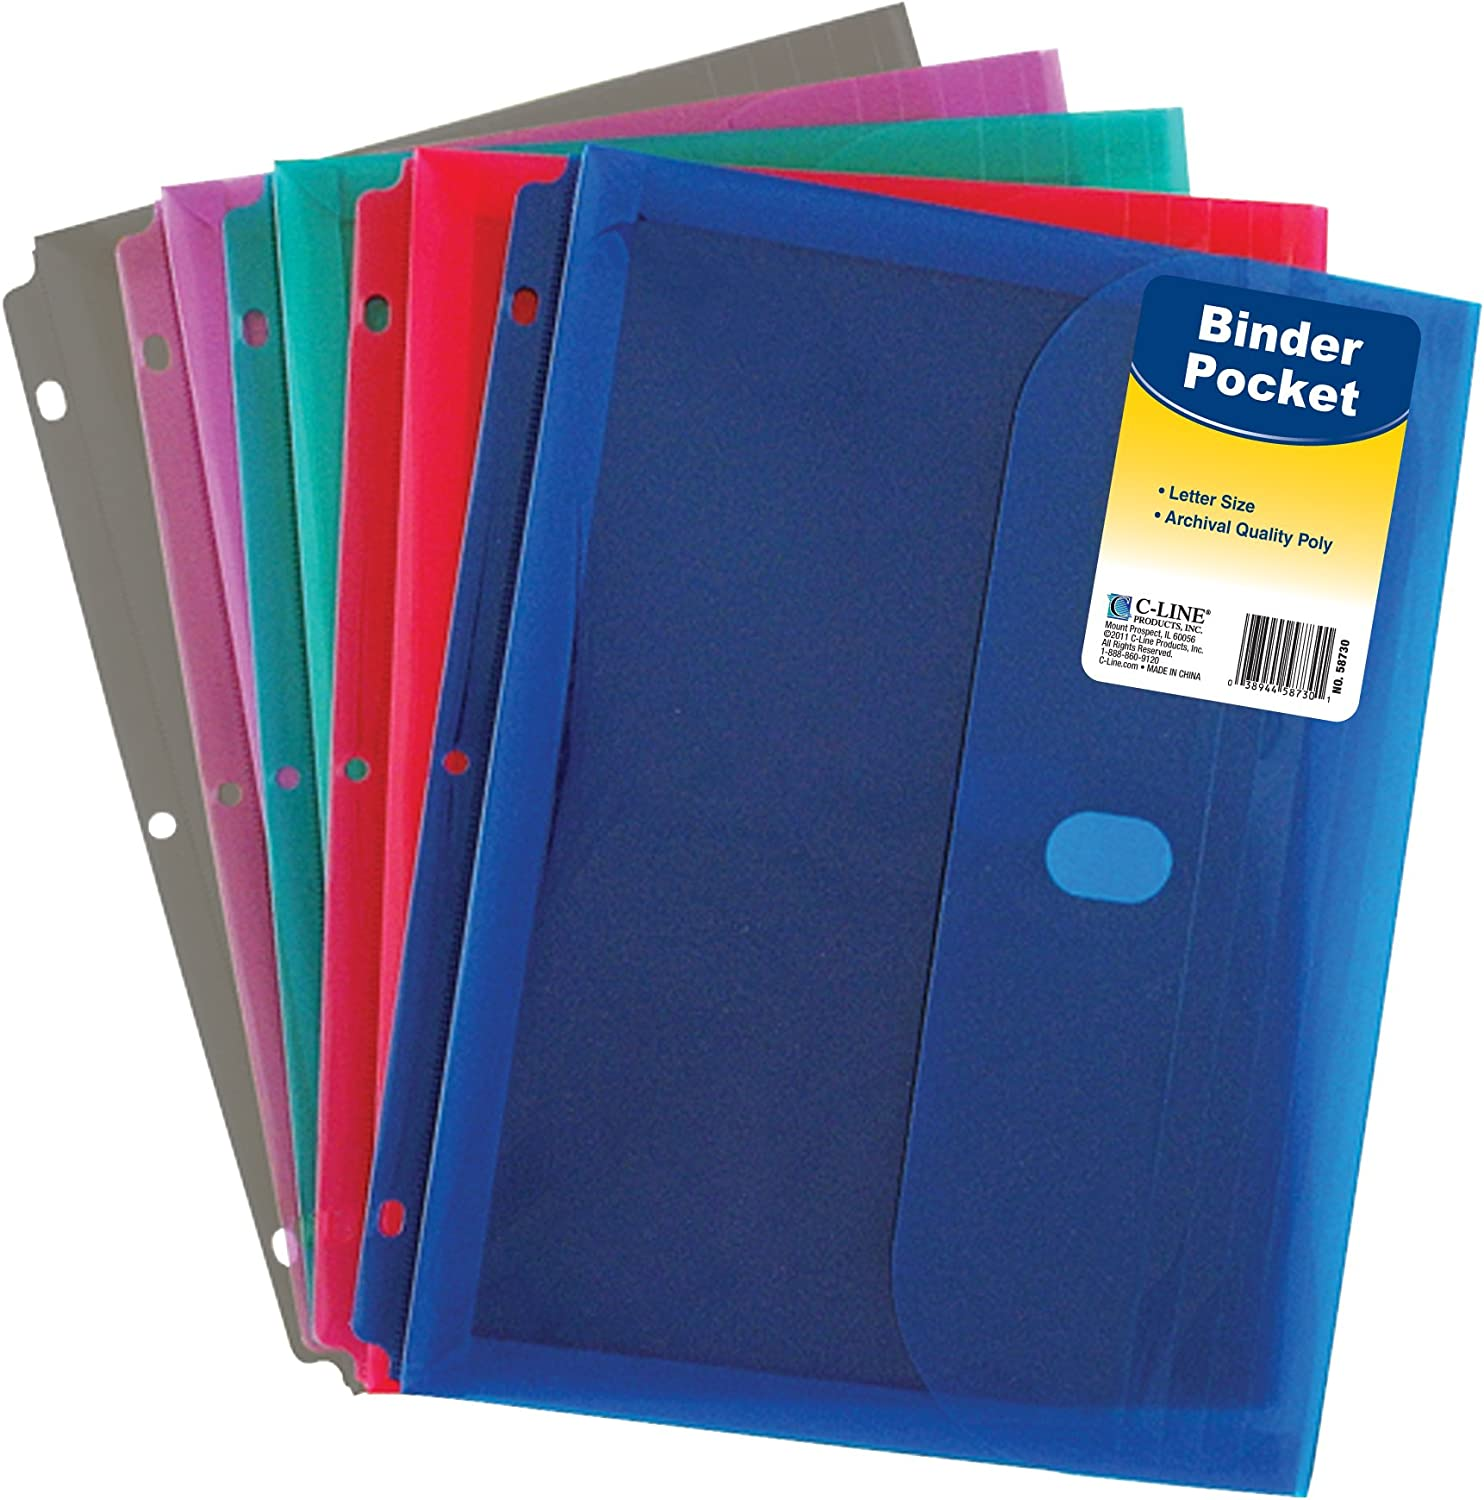 C-Line Super Heavyweight Poly Binder Pocket with Hook & Loop Closure, 1-Inch Gusset, Letter Size, Pack of 36, Assorted Colors (58730) : Office Products